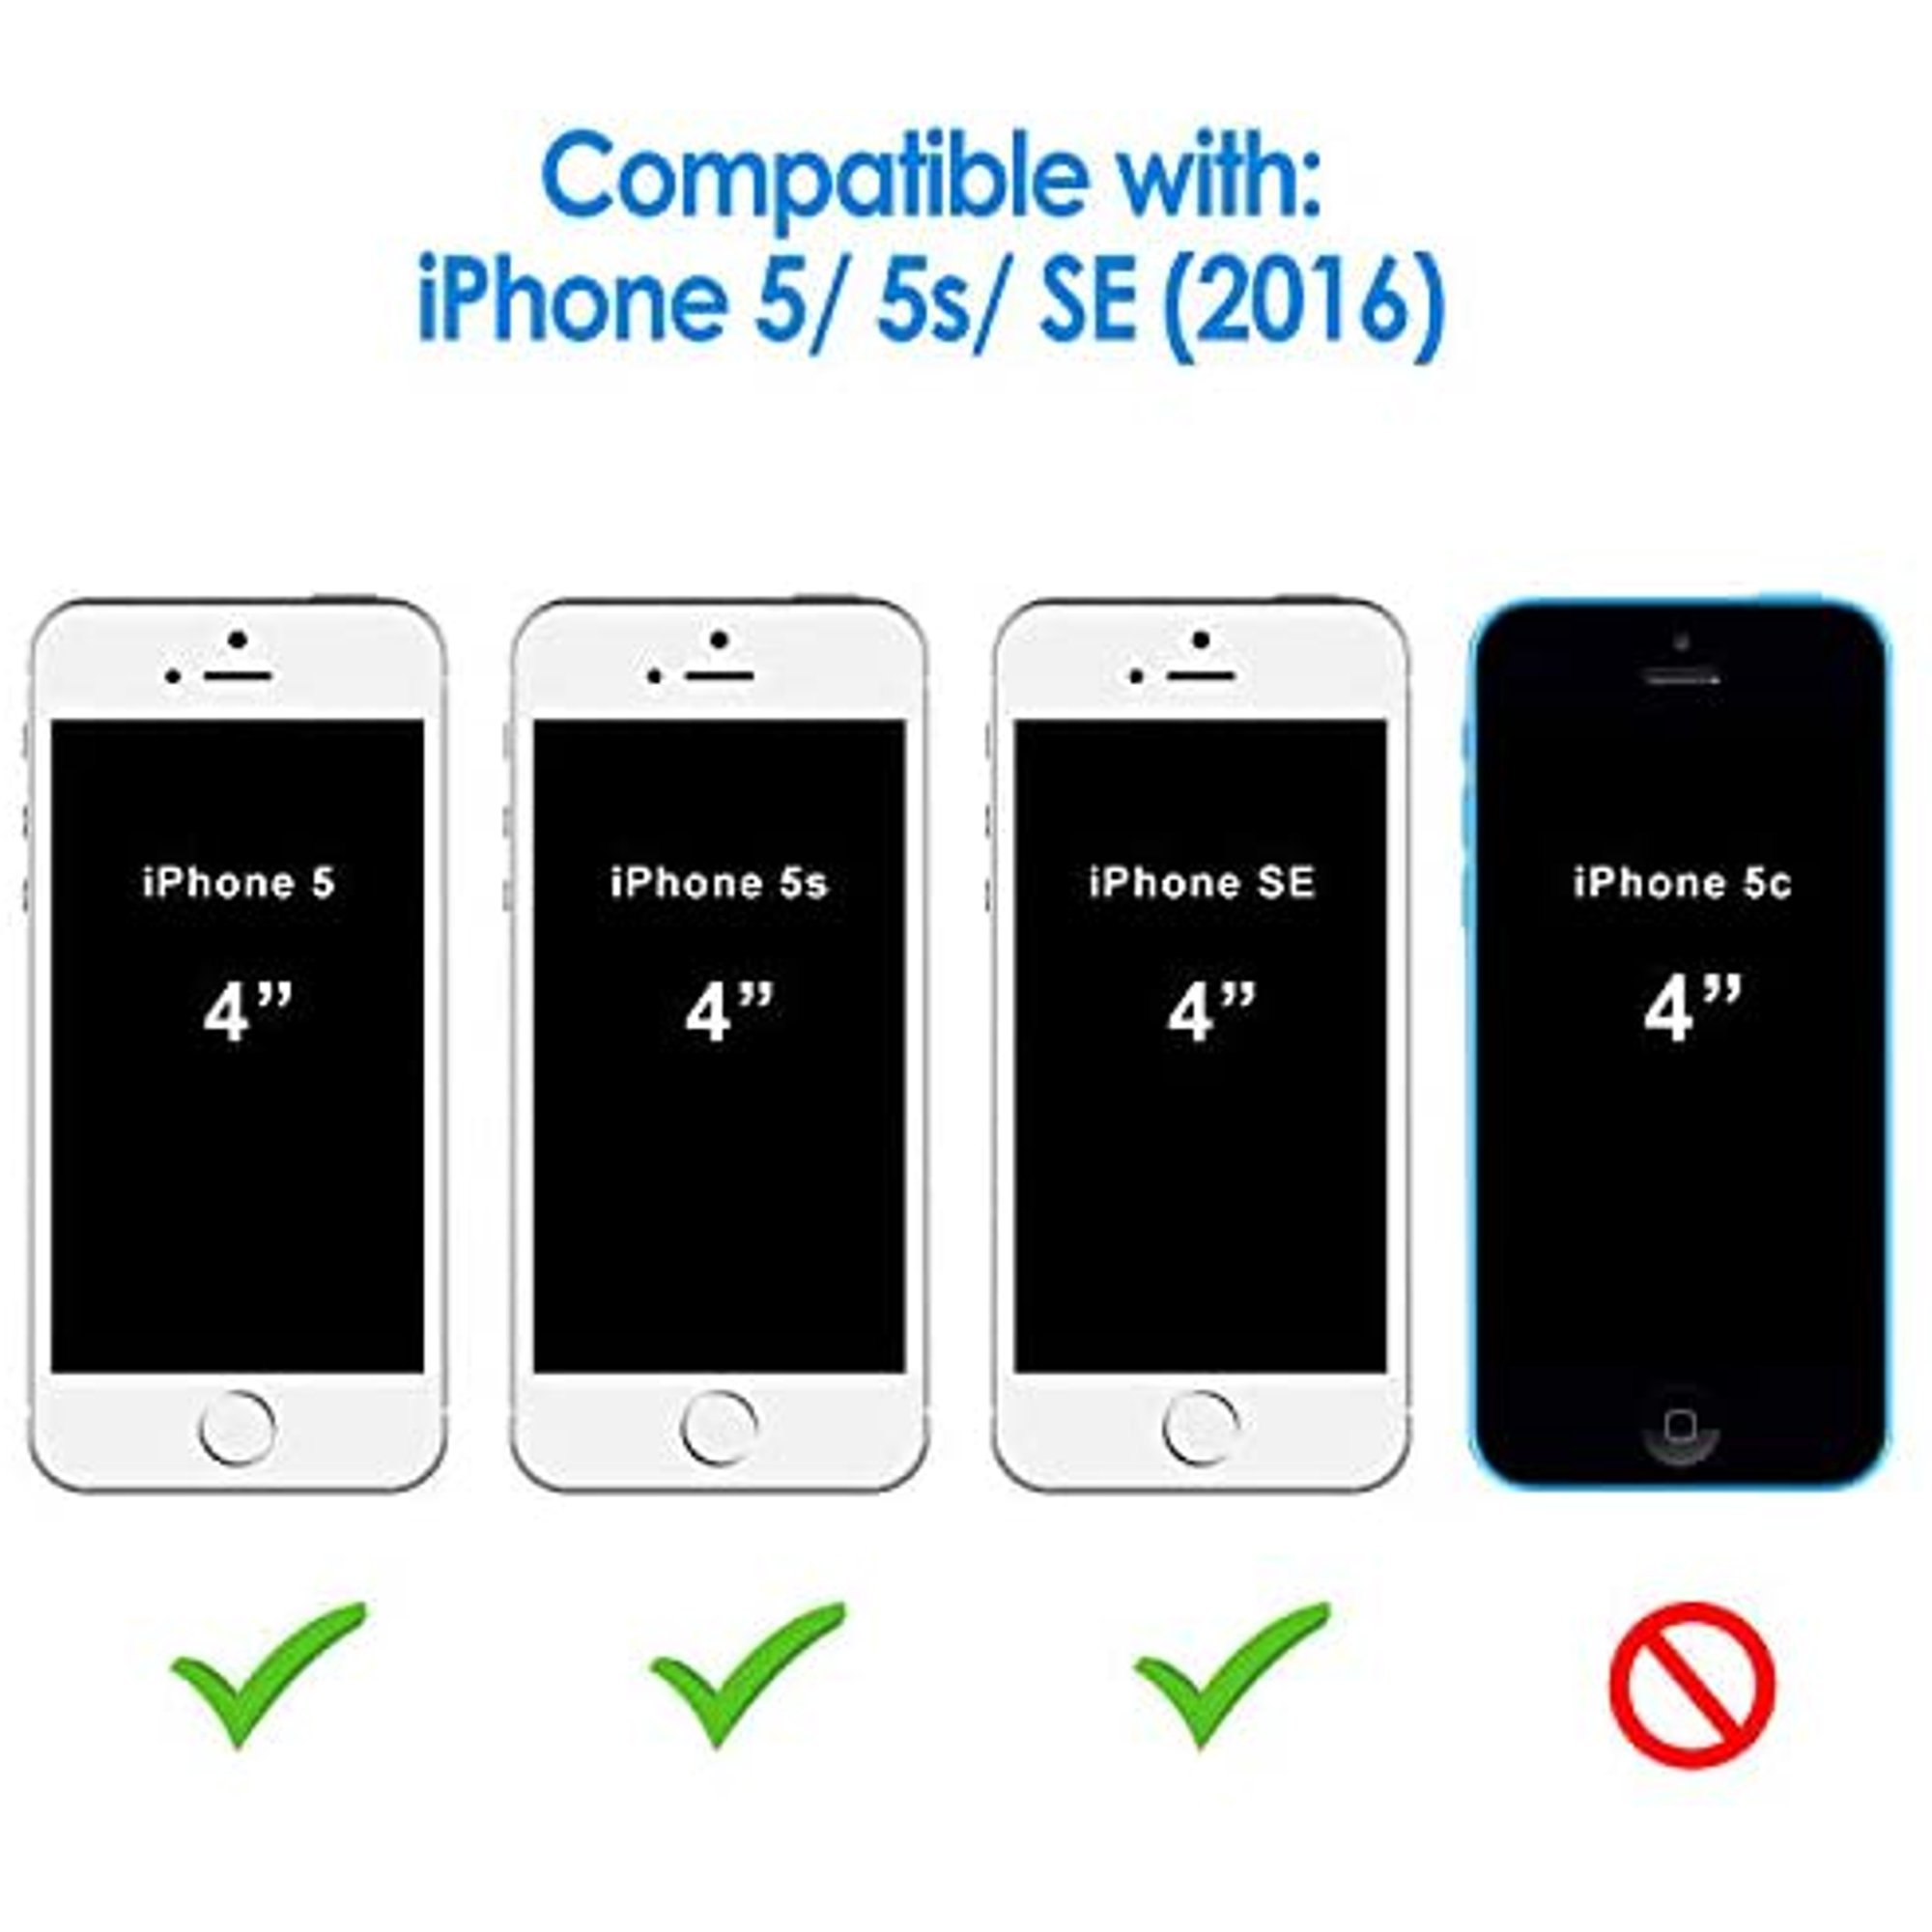 JETech Case for Apple iPhone SE (2016 Edition), iPhone 5s and iPhone 5, Shockproof Bumper Cover, Anti-Scratch Clear